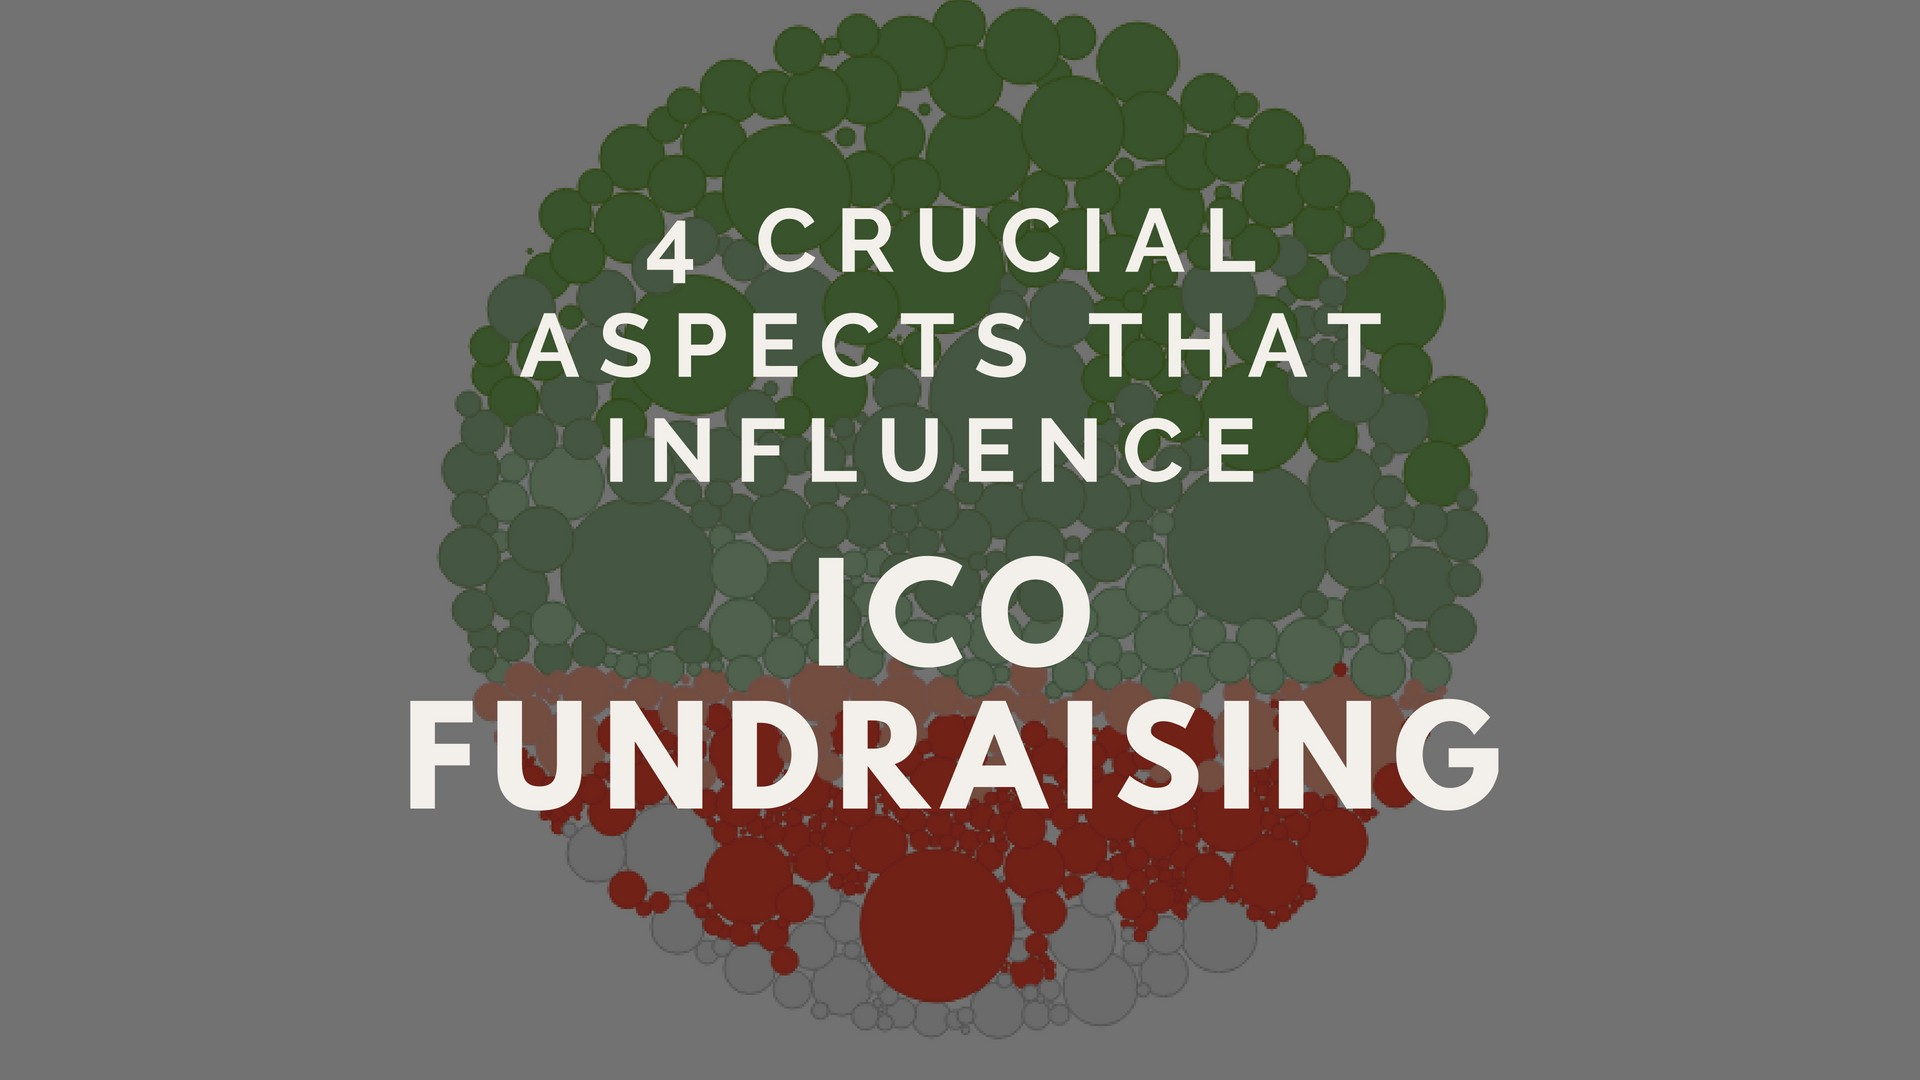 /4-crucial-aspects-that-influence-ico-fundraising-analyzing-1200-icos-and-100-factors-7e78172ffd10 feature image